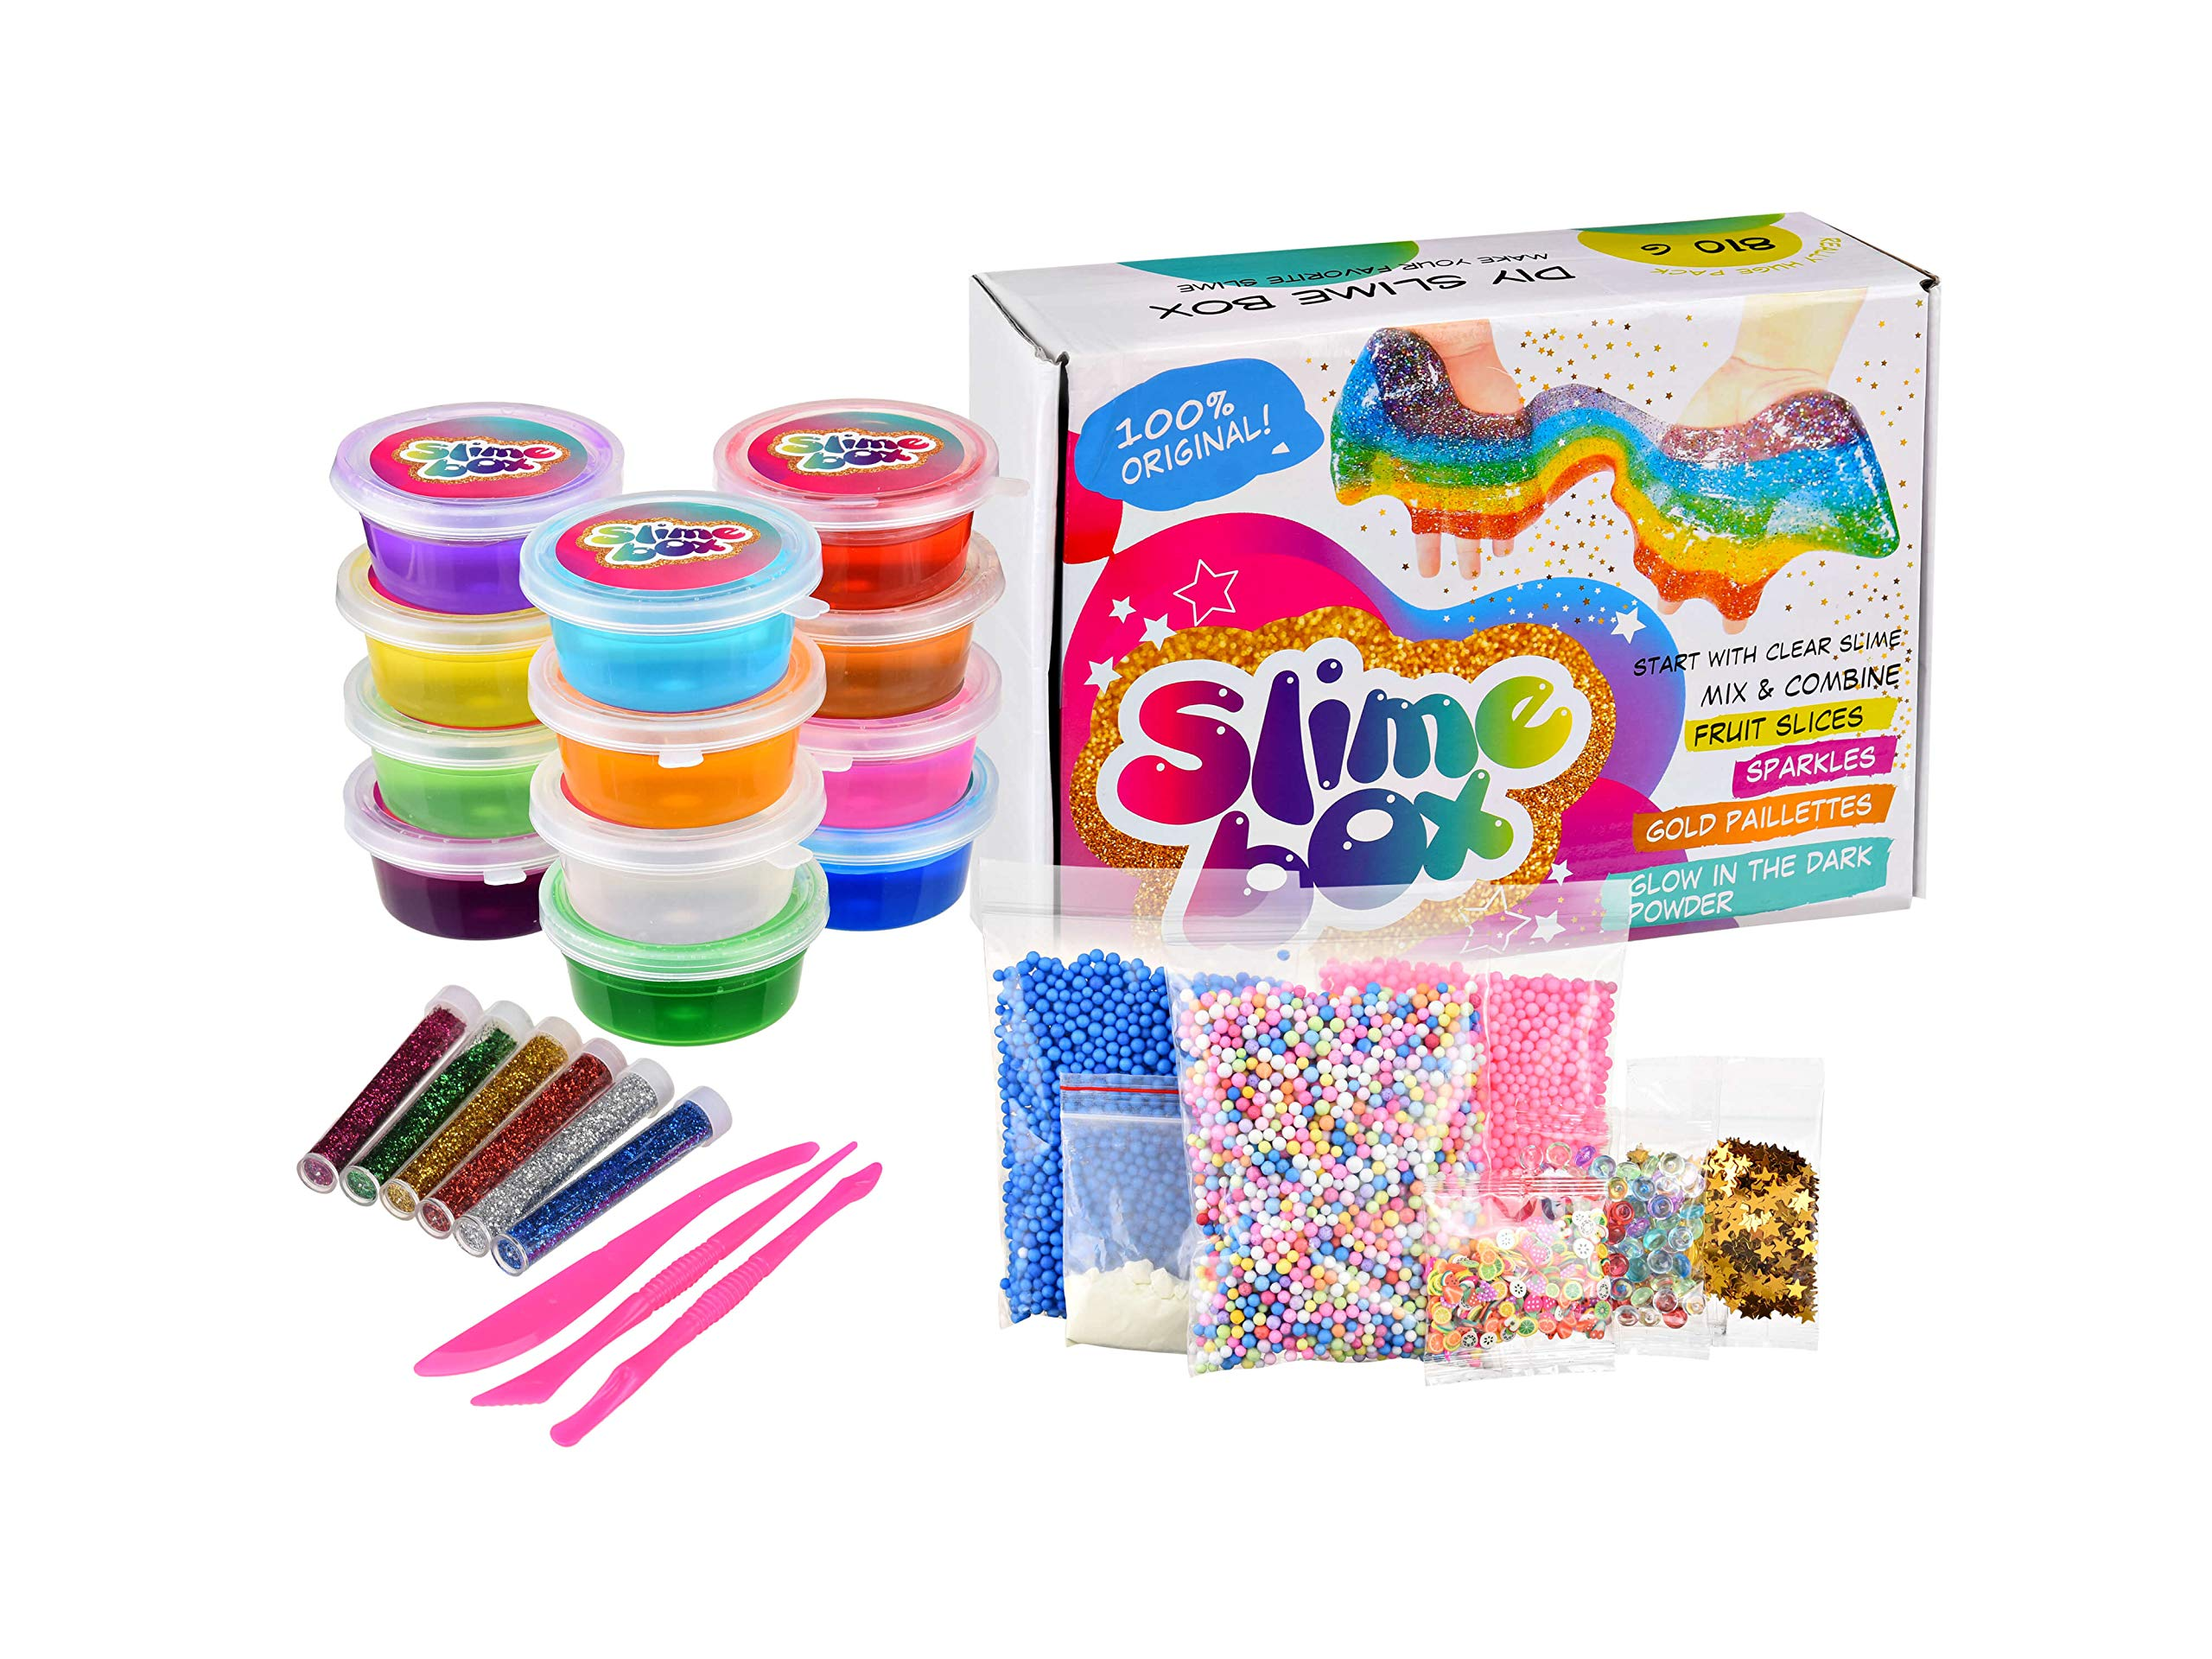 Slime Kit Supplies Fluffy DIY 12 Clear Colors 250 Fruit Slices Girls Toys  Fishbowl Unicorn Glitter Pack Foam Beads Balls for Kids 94d7305073